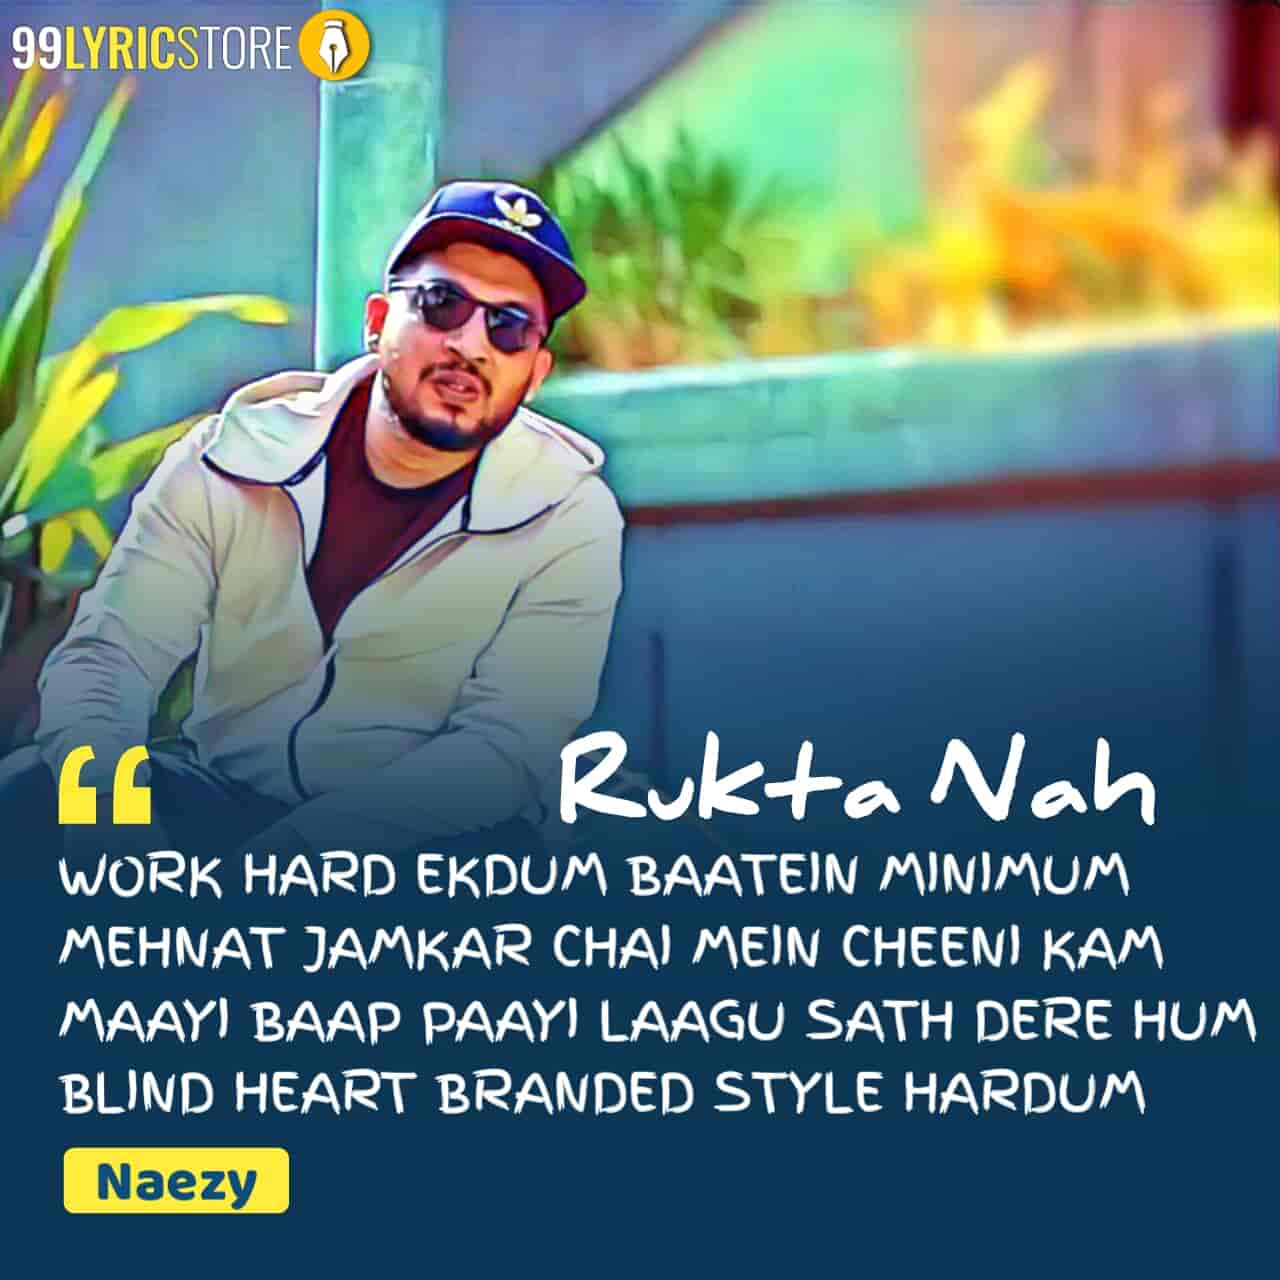 Rukta Nah Hip hop song sung by Naezy